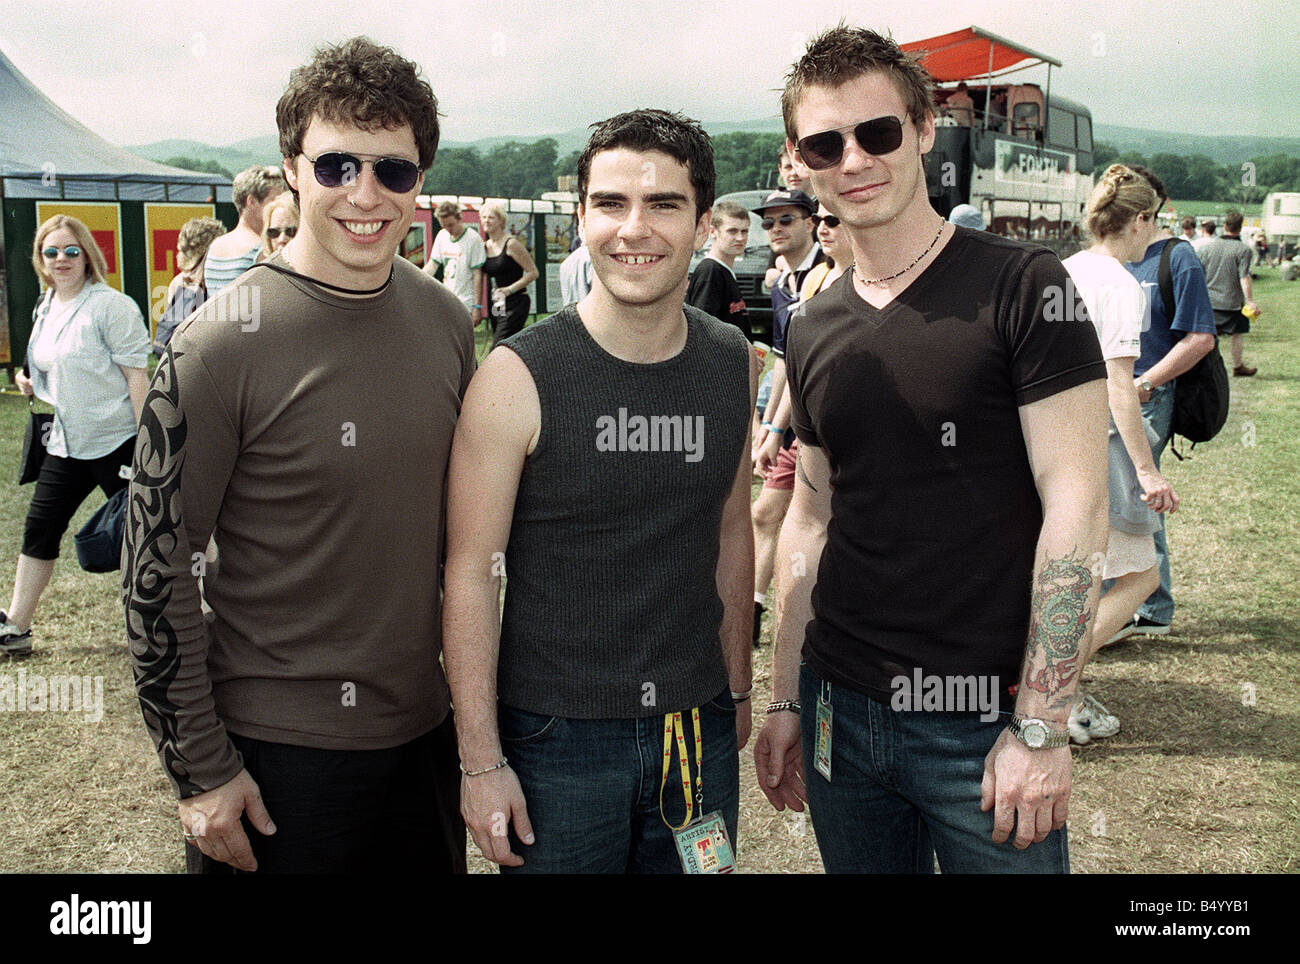 Stereophonics pictured at T in the Park smiling June 1999 - Stock Image